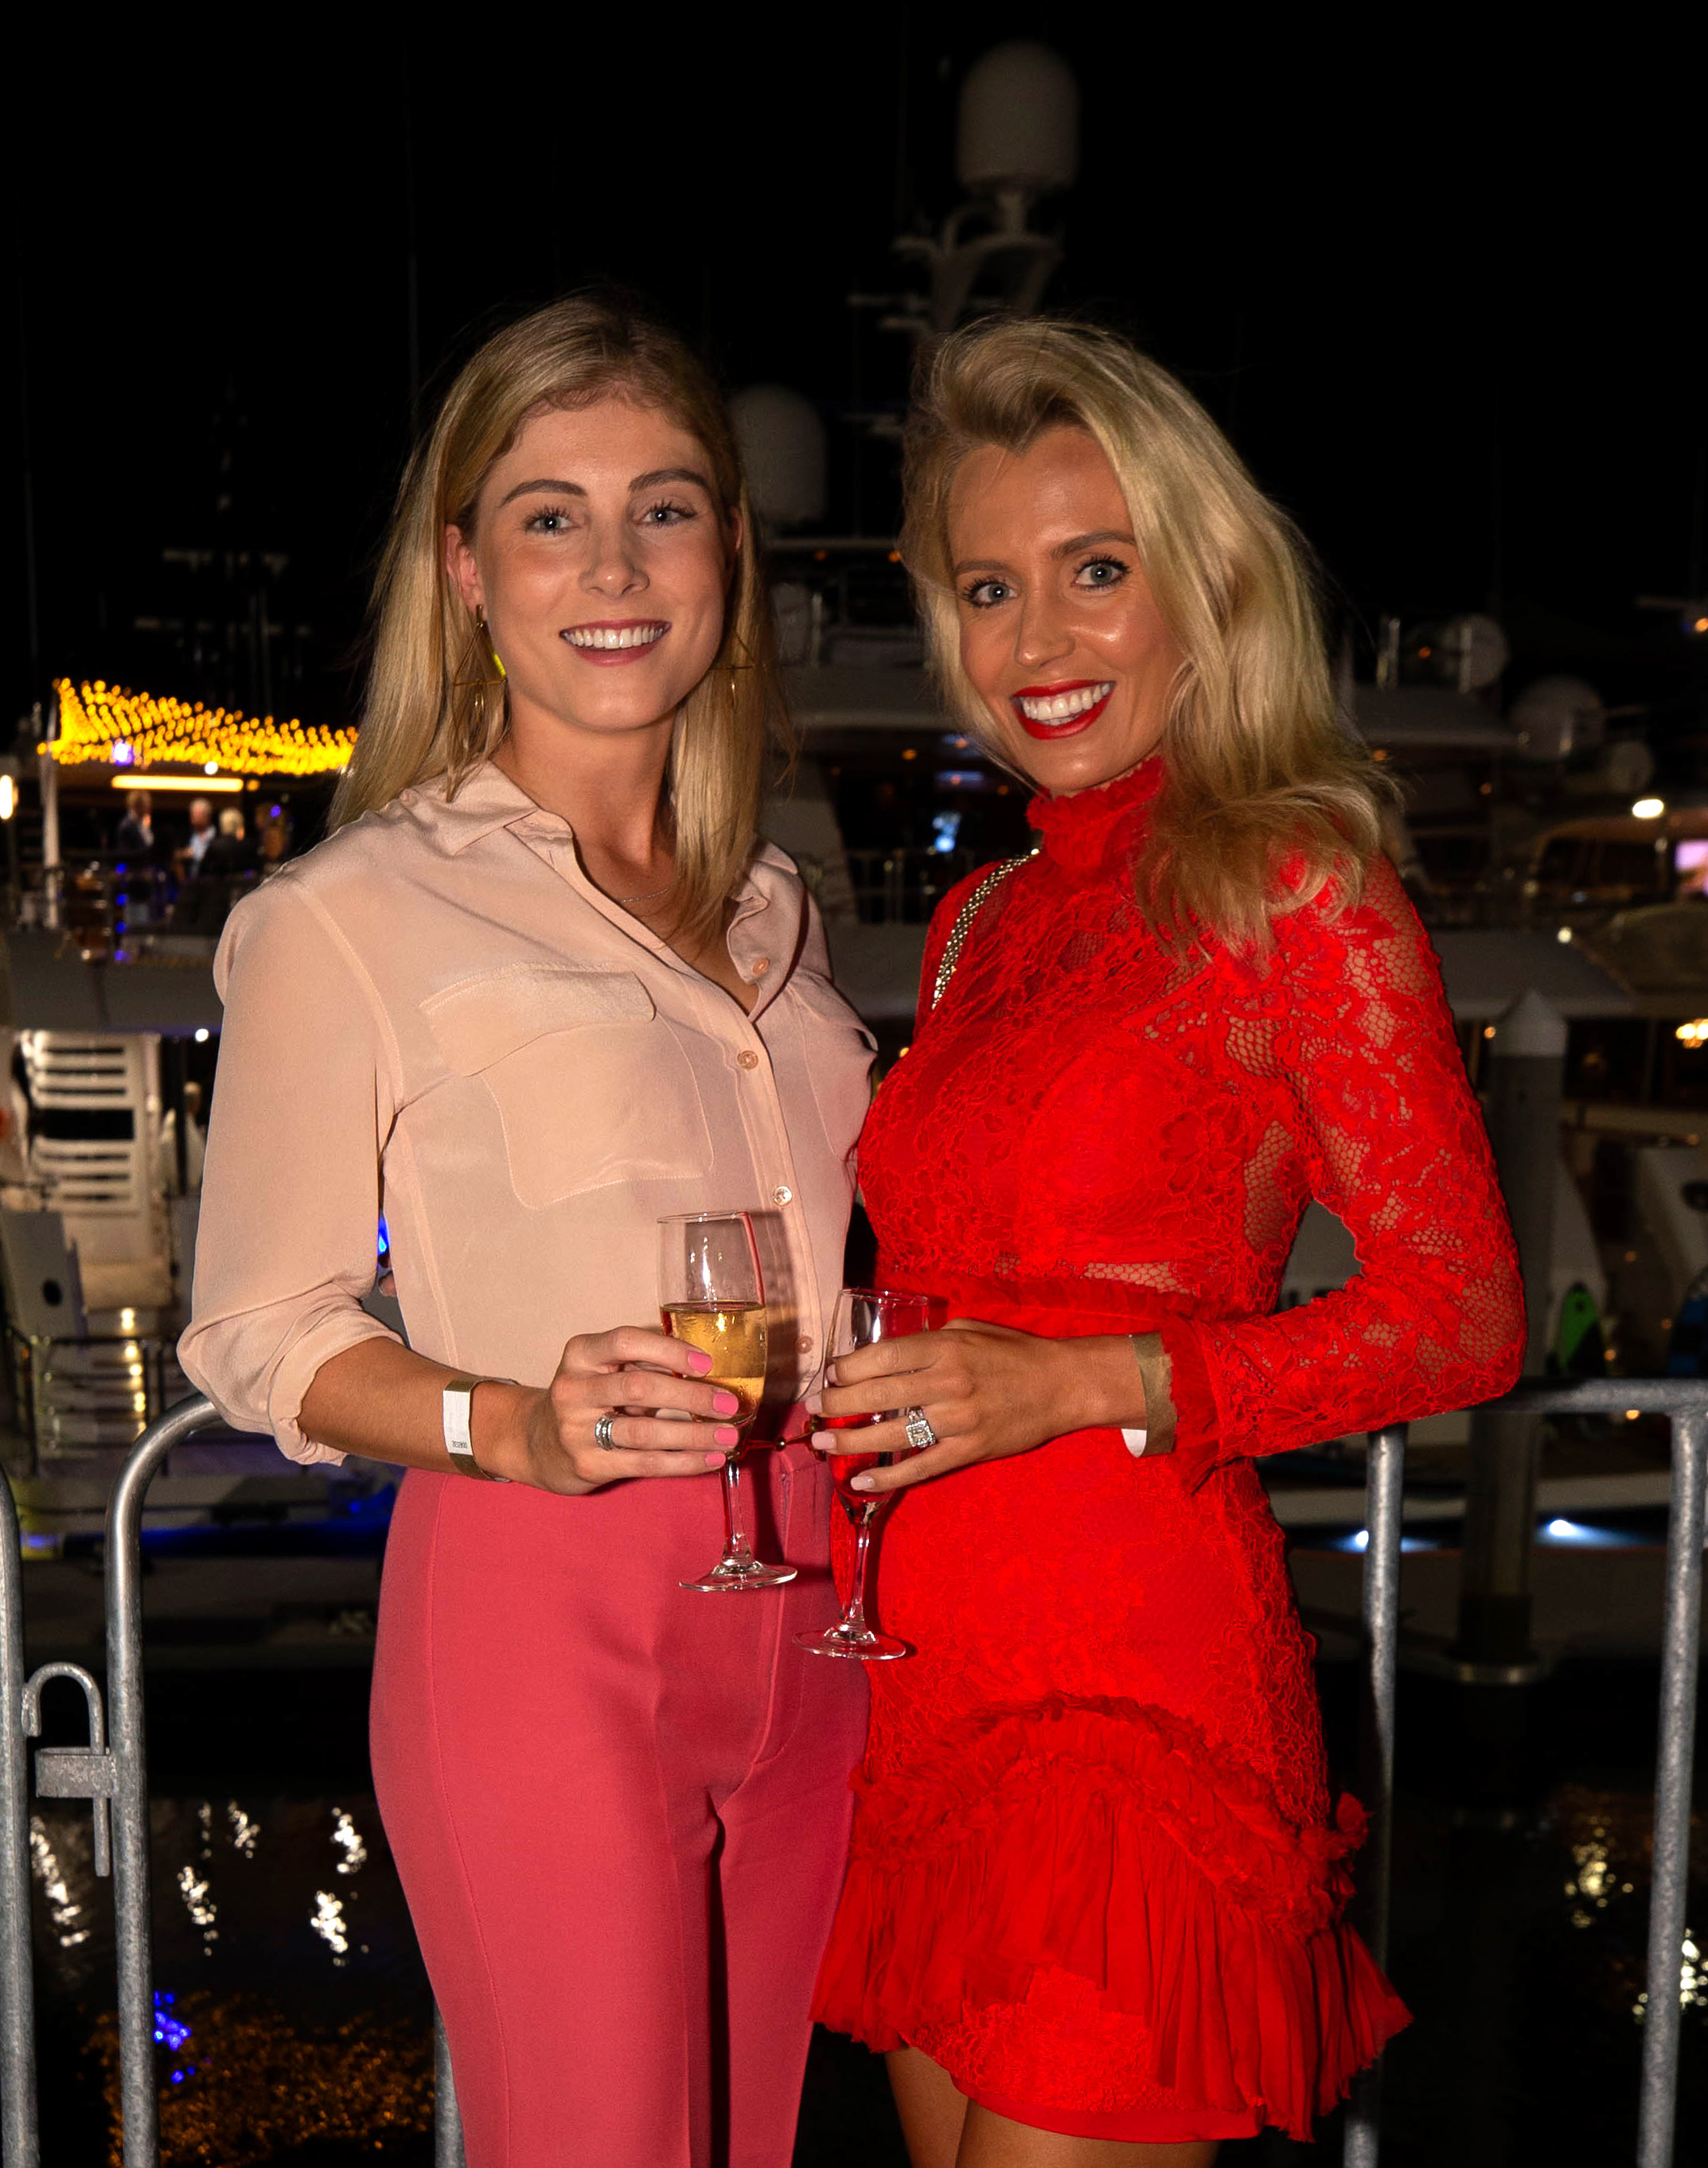 Guests at the VIP event of the AUstralian Superyacht Rendezvous